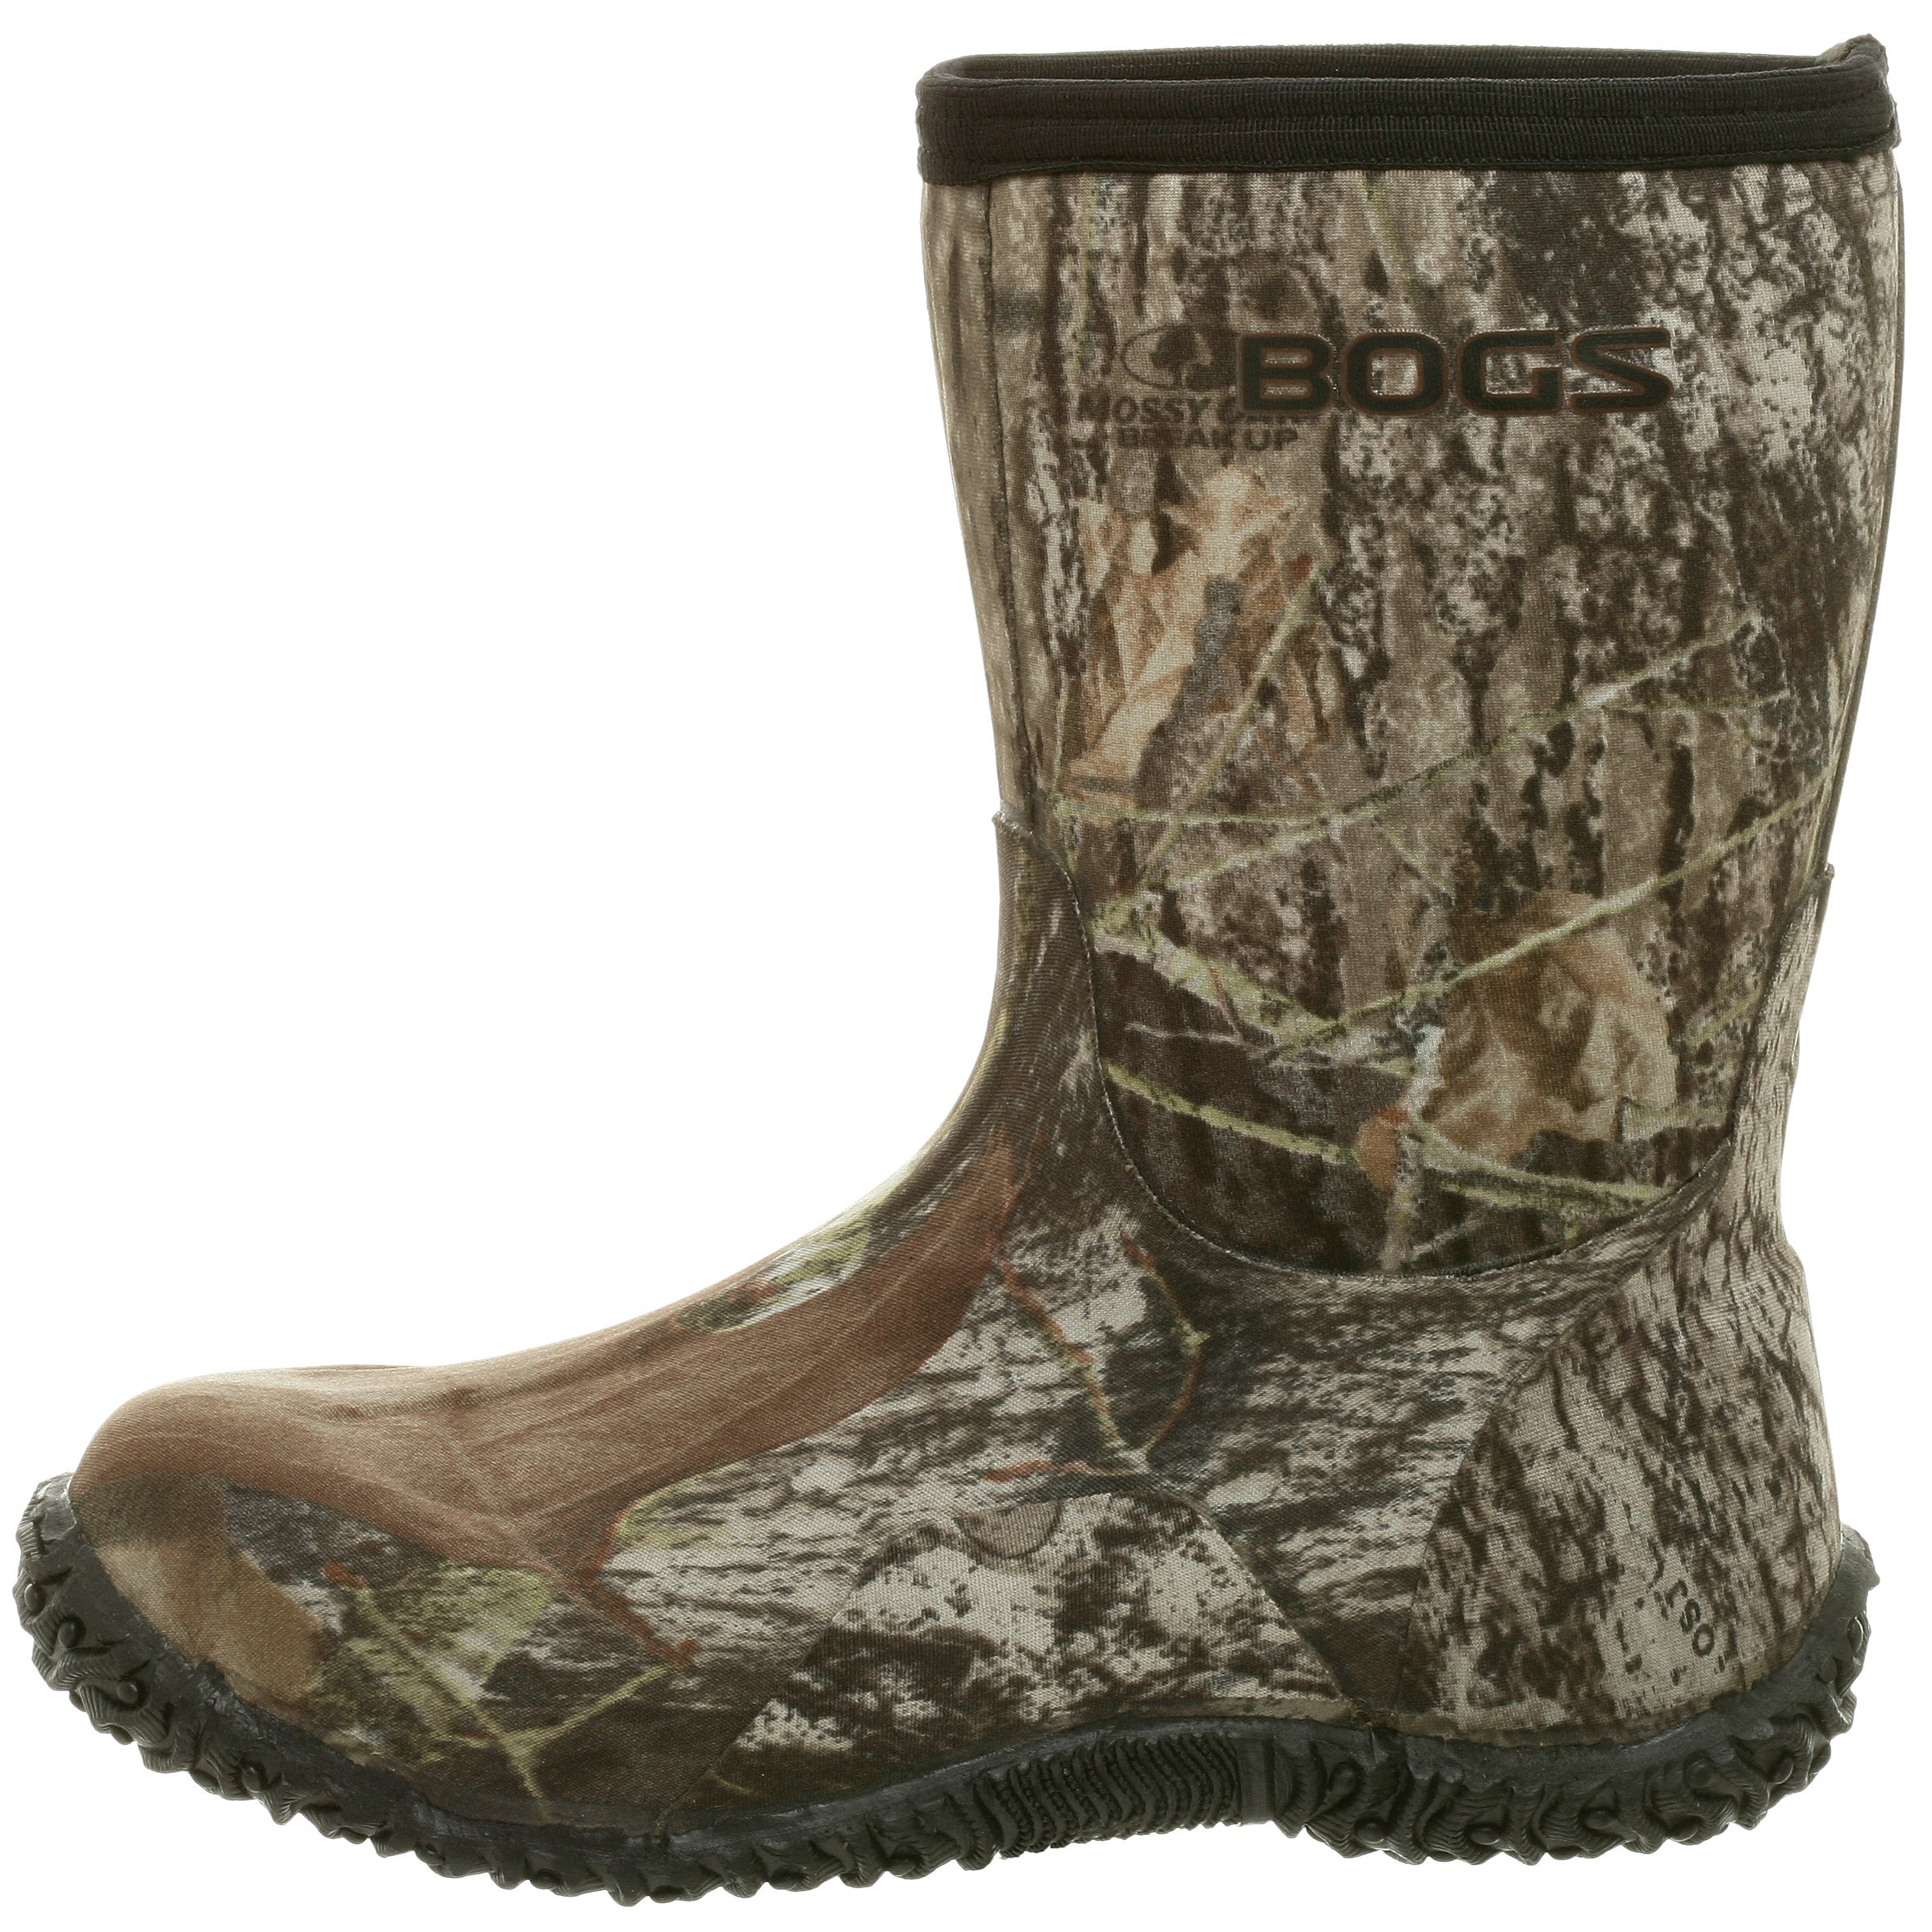 Bogs Classic Mid Waterproof Insulated Rain Boot (Toddler/Little Kid/Big Kid),  Mossy Oak, 9 M US Toddler by Bogs (Image #5)